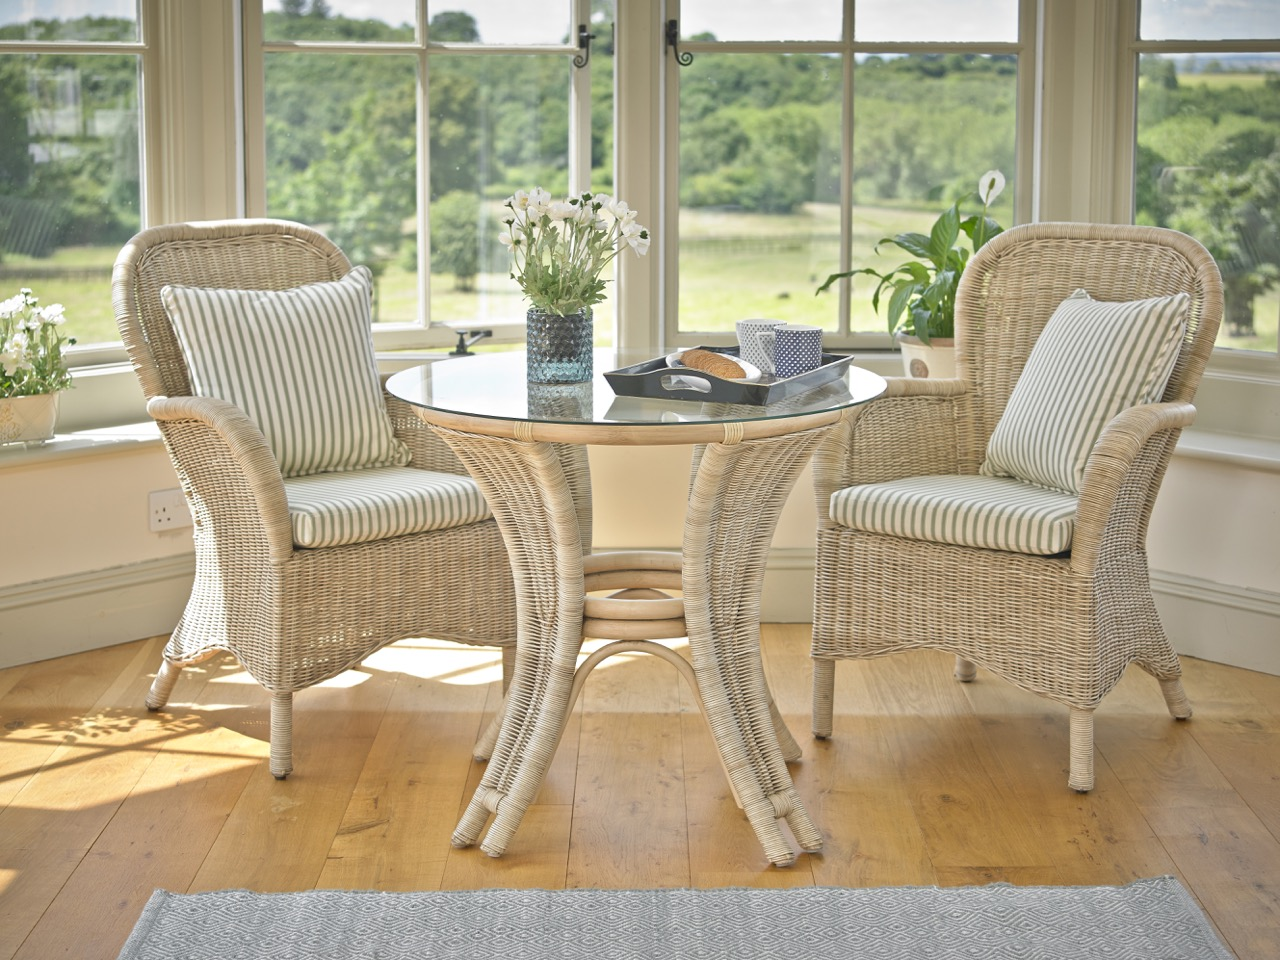 10 Best Wicker Chairs Conservatory Chairs Holloways